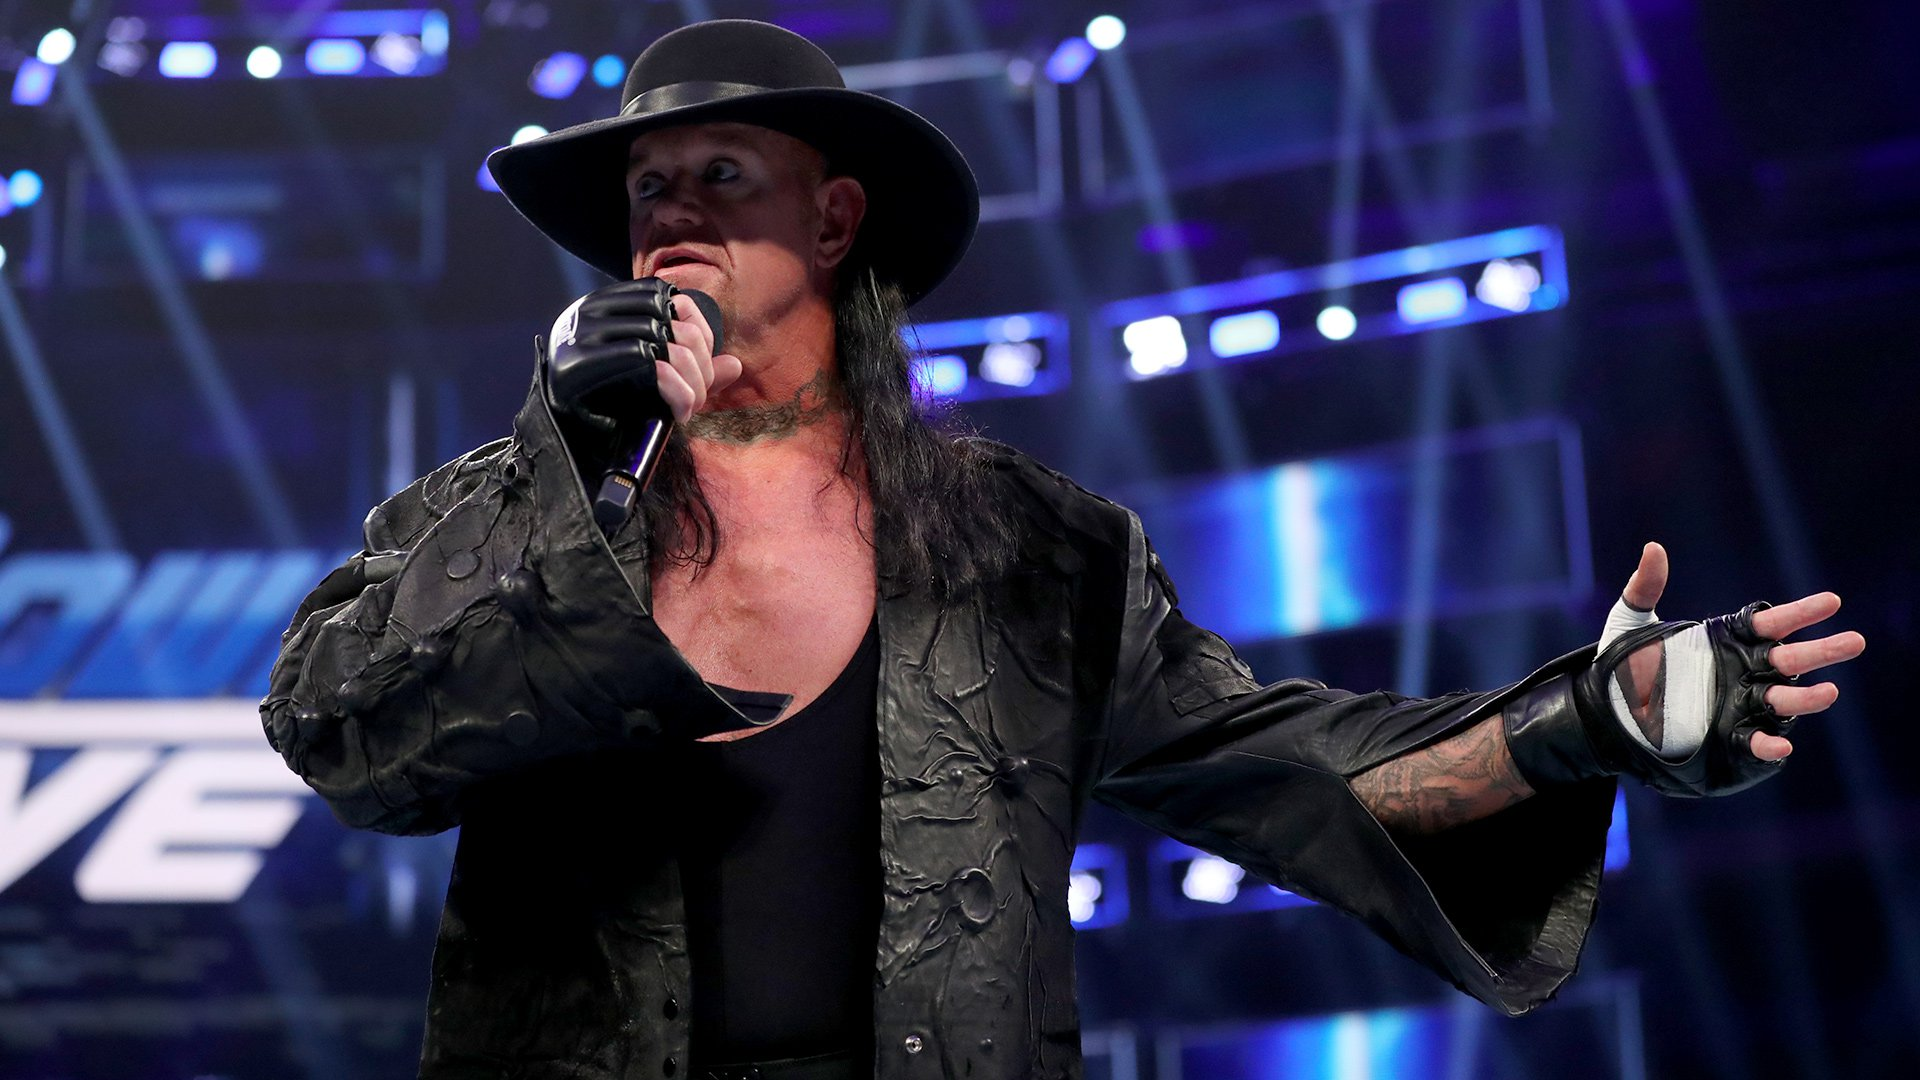 WrestleMania 36 Night 1 match grades: Undertaker better than expected; Strowman, Goldberg produce a stinker - sporting news